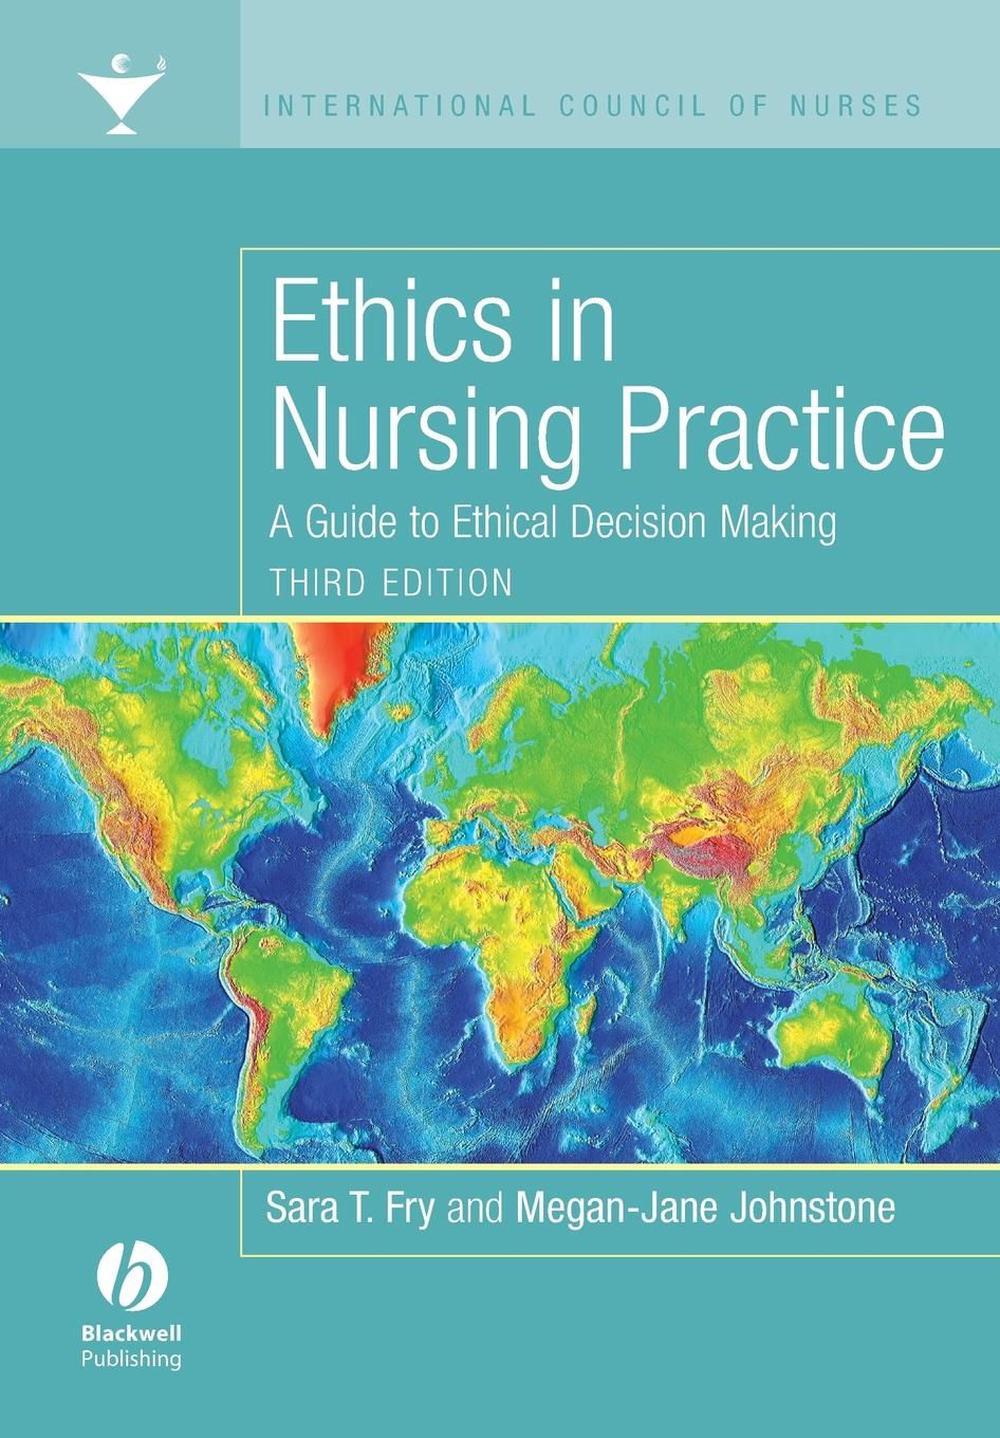 Ethics in Nursing Practice: A Guide to Ethical Decision Making